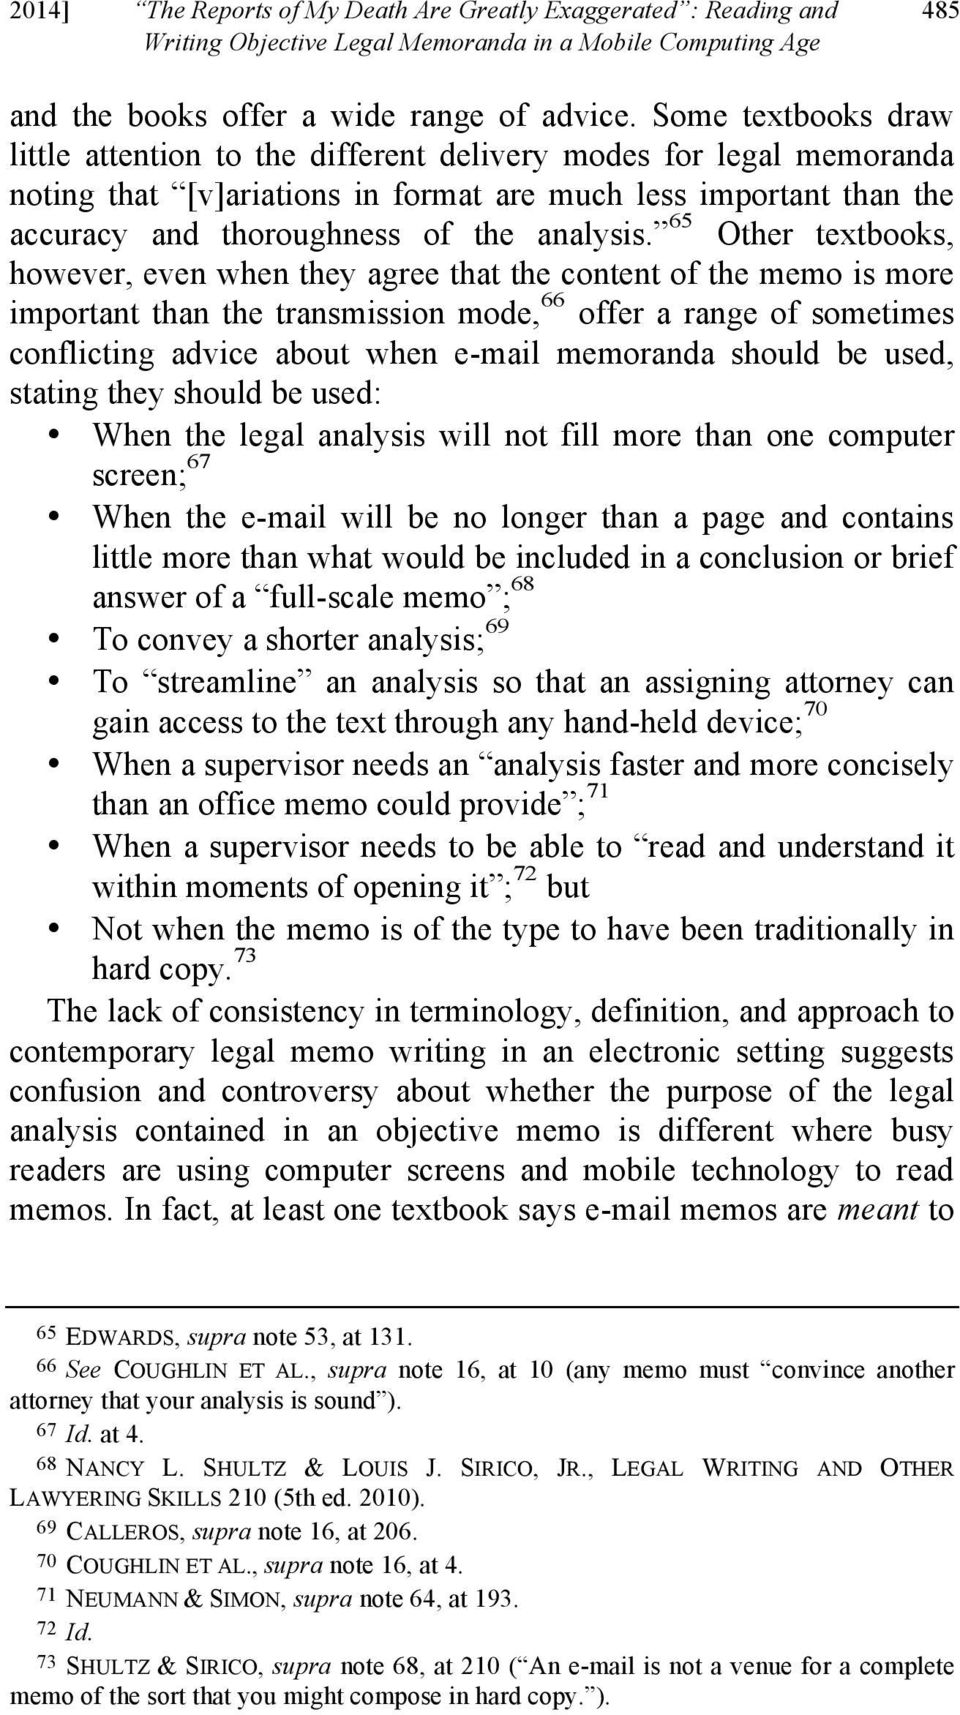 65 Other textbooks, however, even when they agree that the content of the memo is more important than the transmission mode, 66 offer a range of sometimes conflicting advice about when e-mail